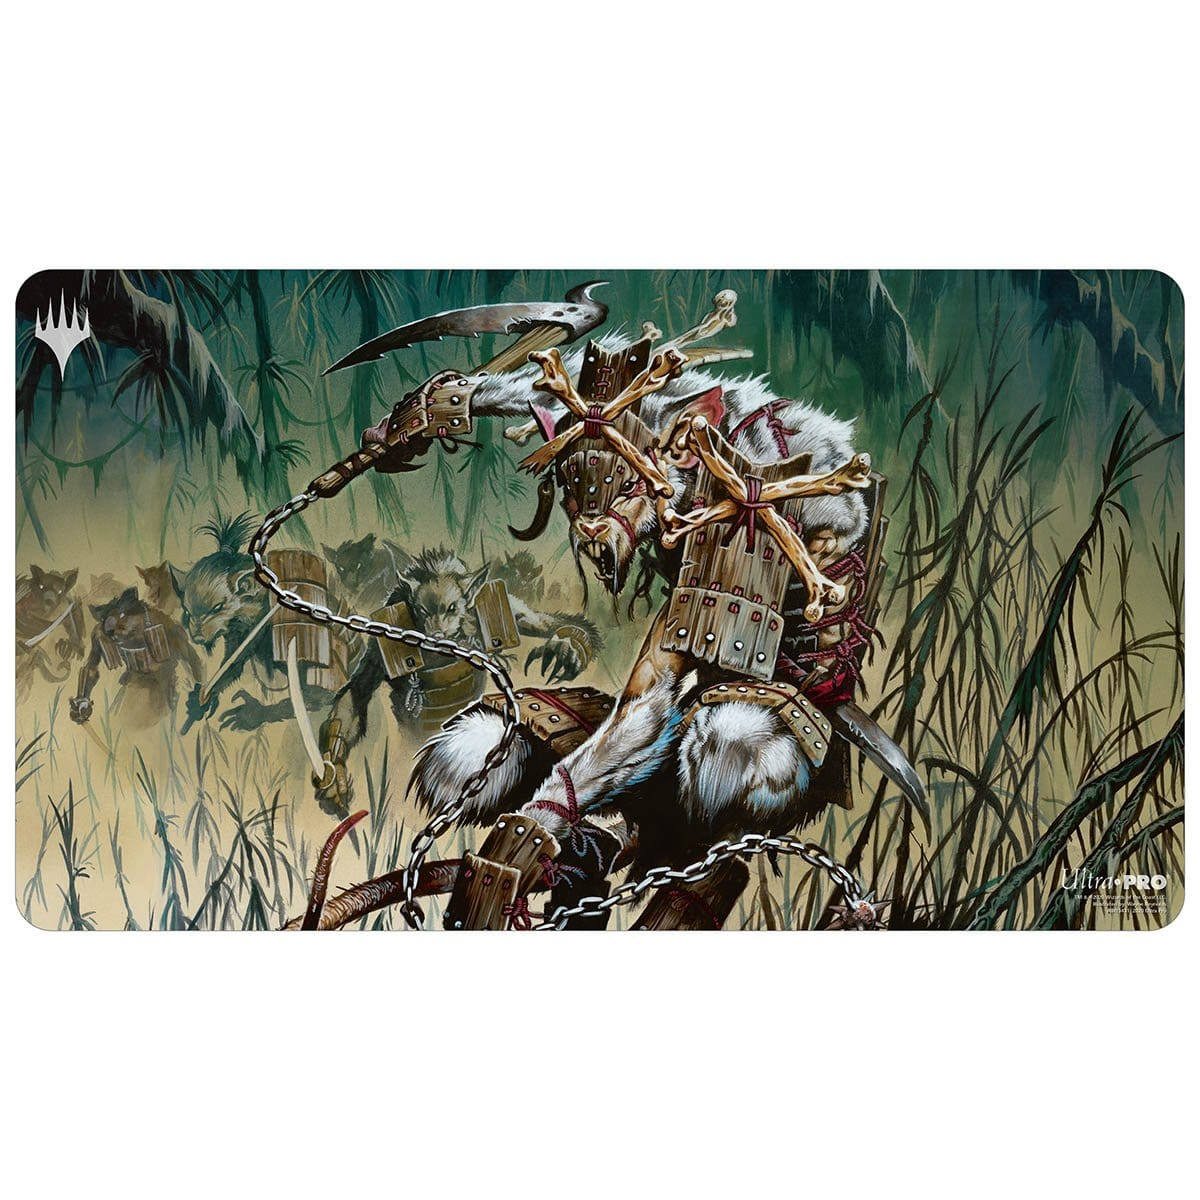 Marrow-Gnawer Playmat - Playmat - Original Magic Art - Accessories for Magic the Gathering and other card games